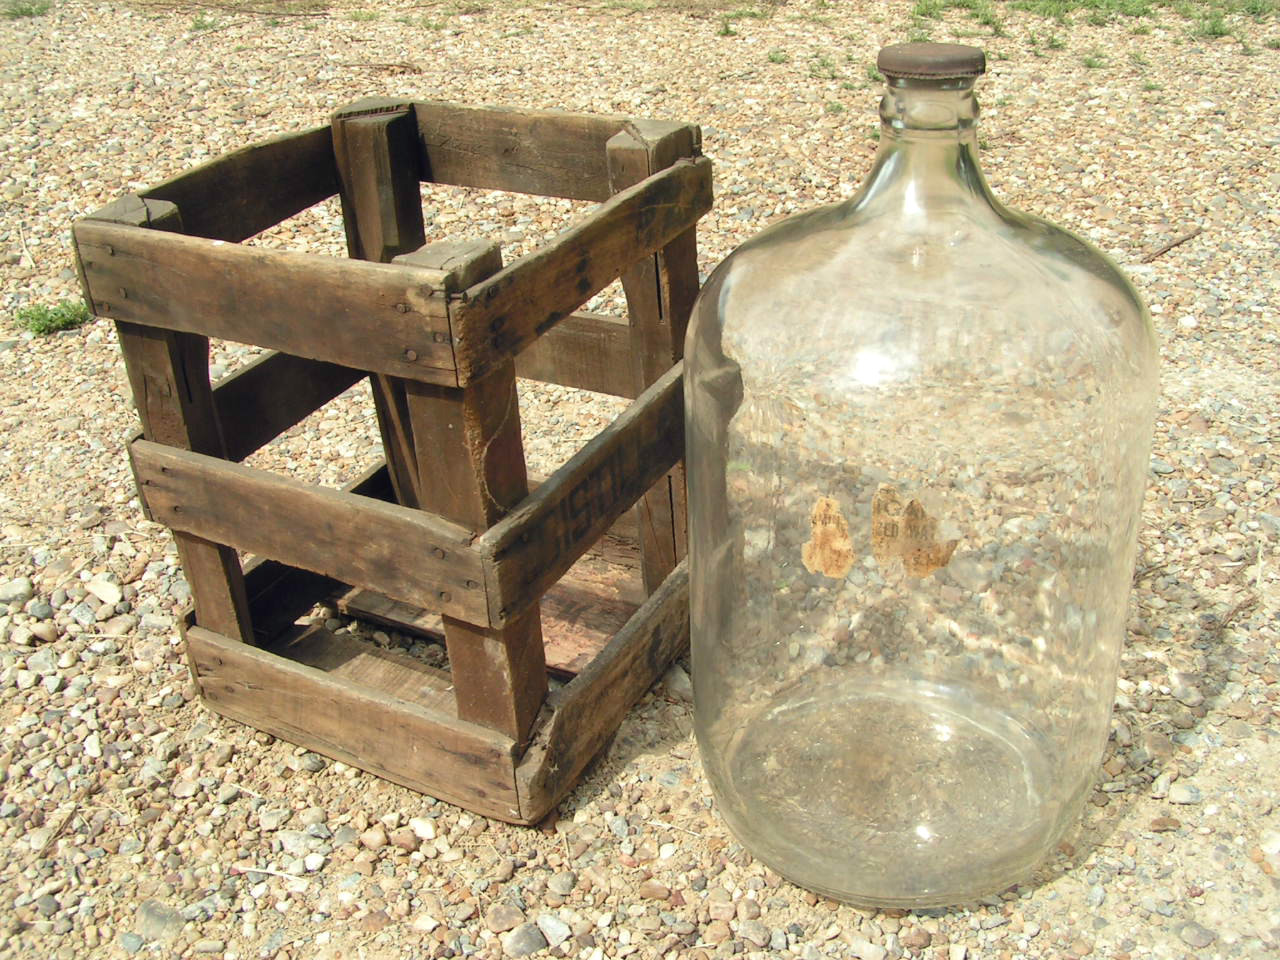 Antique distillata water jug